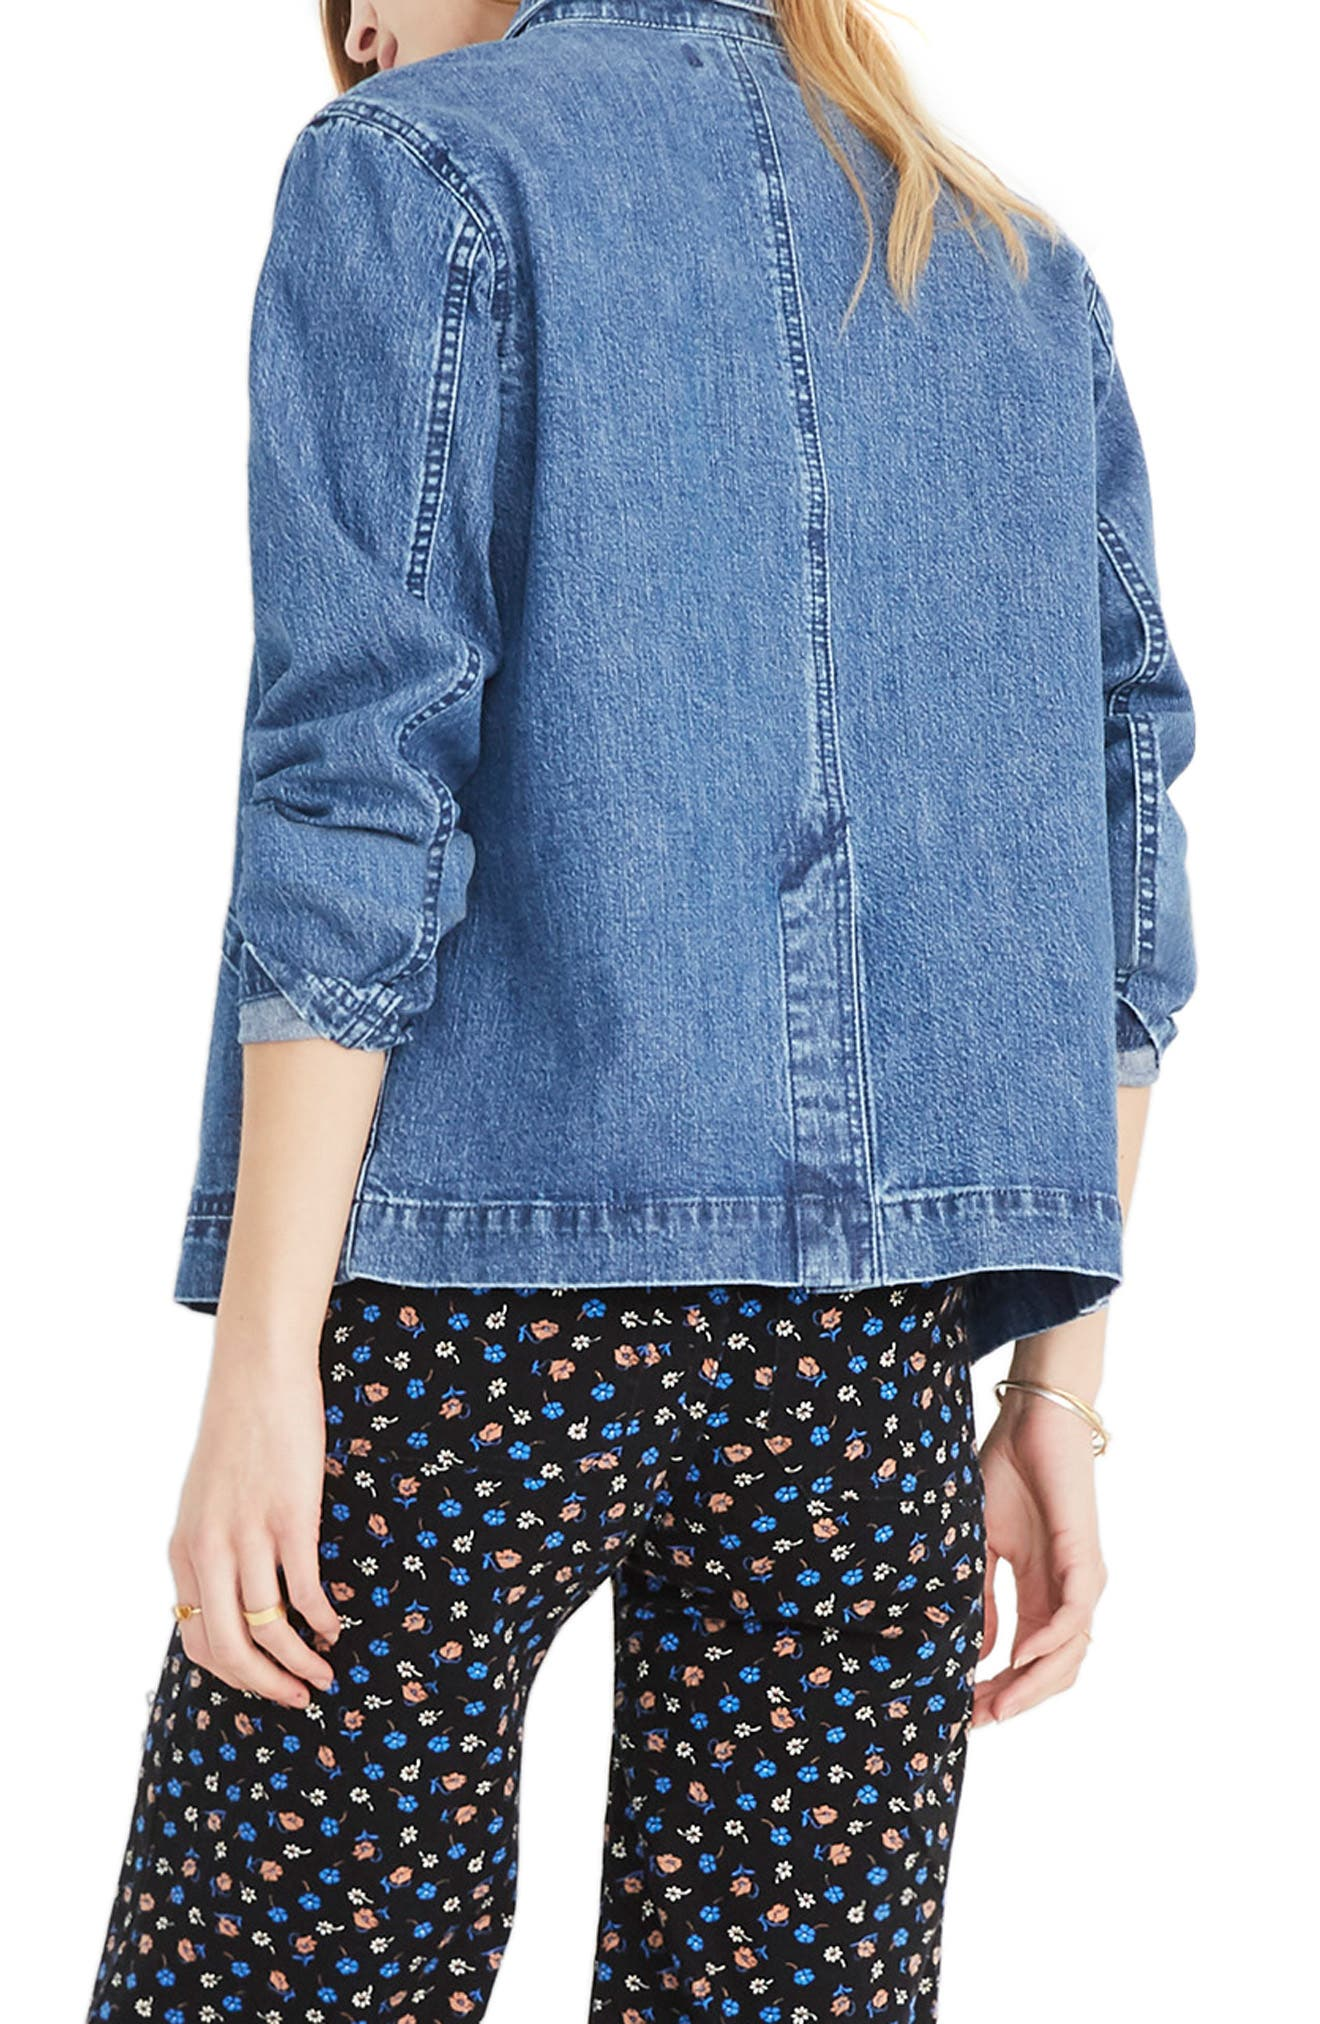 MADEWELL, Denim Patch Pocket Chore Coat, Alternate thumbnail 2, color, 400